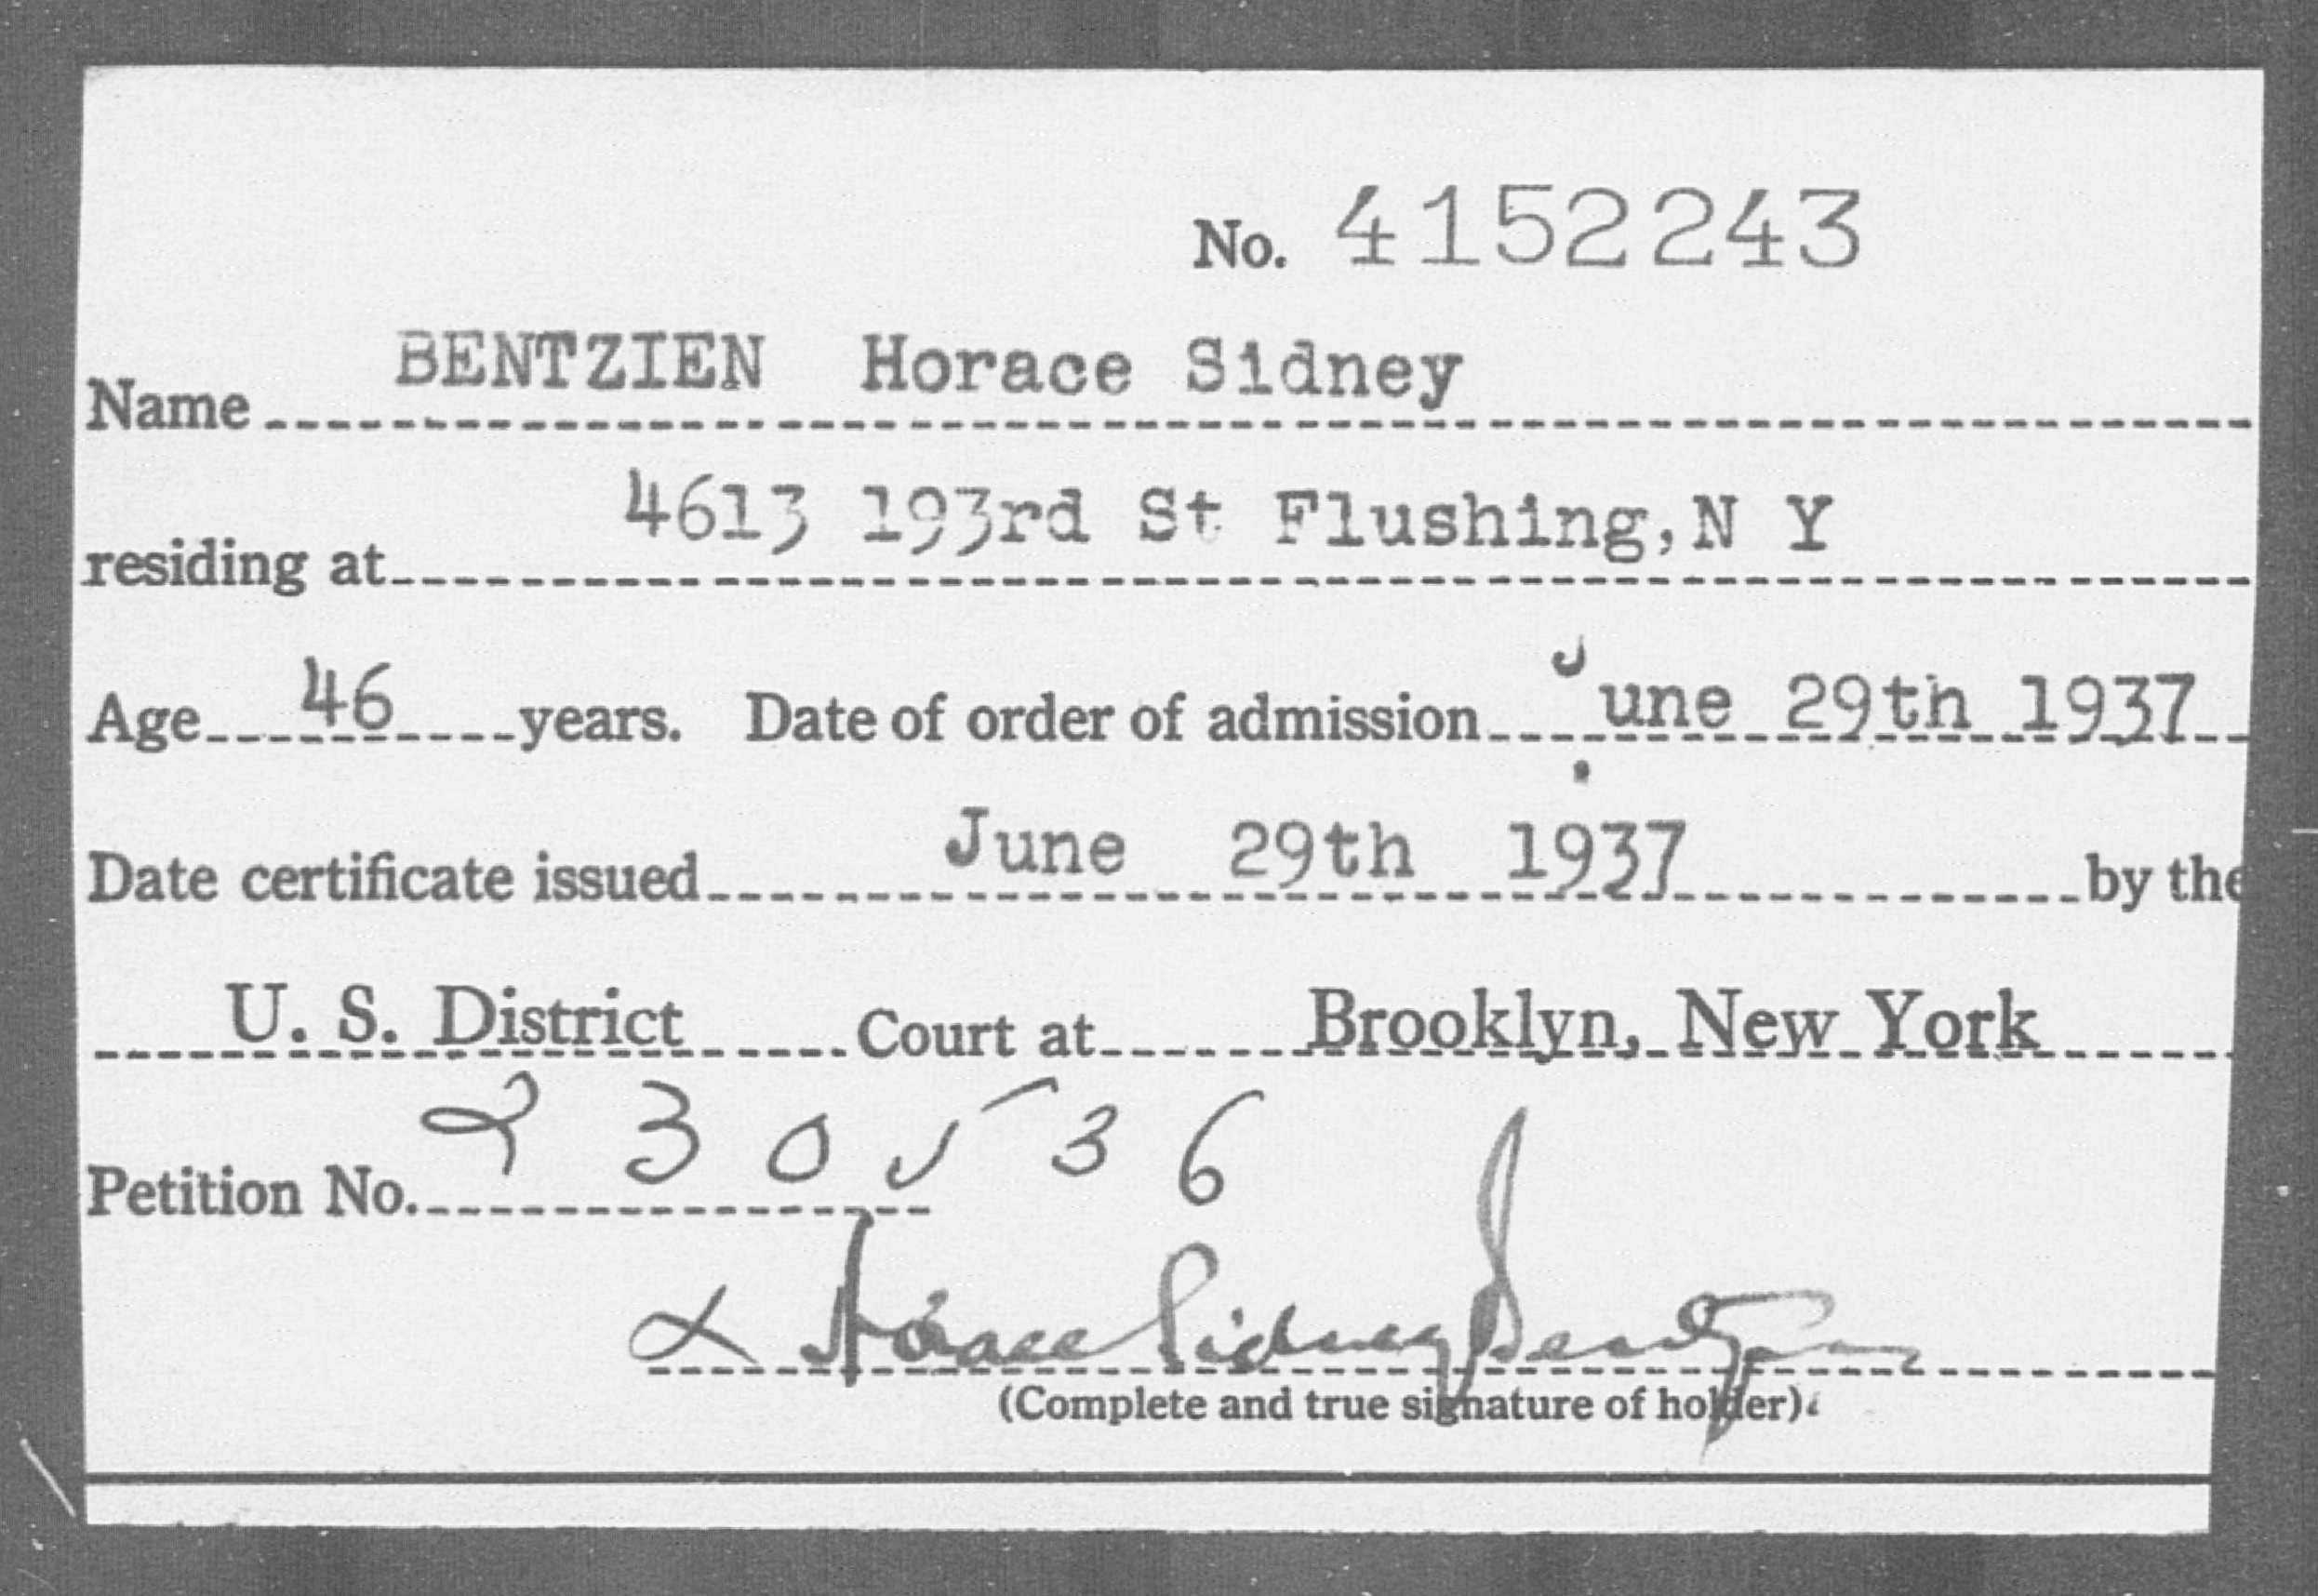 BENTZIEN Horace Sidney - Born: [BLANK], Naturalized: 1937